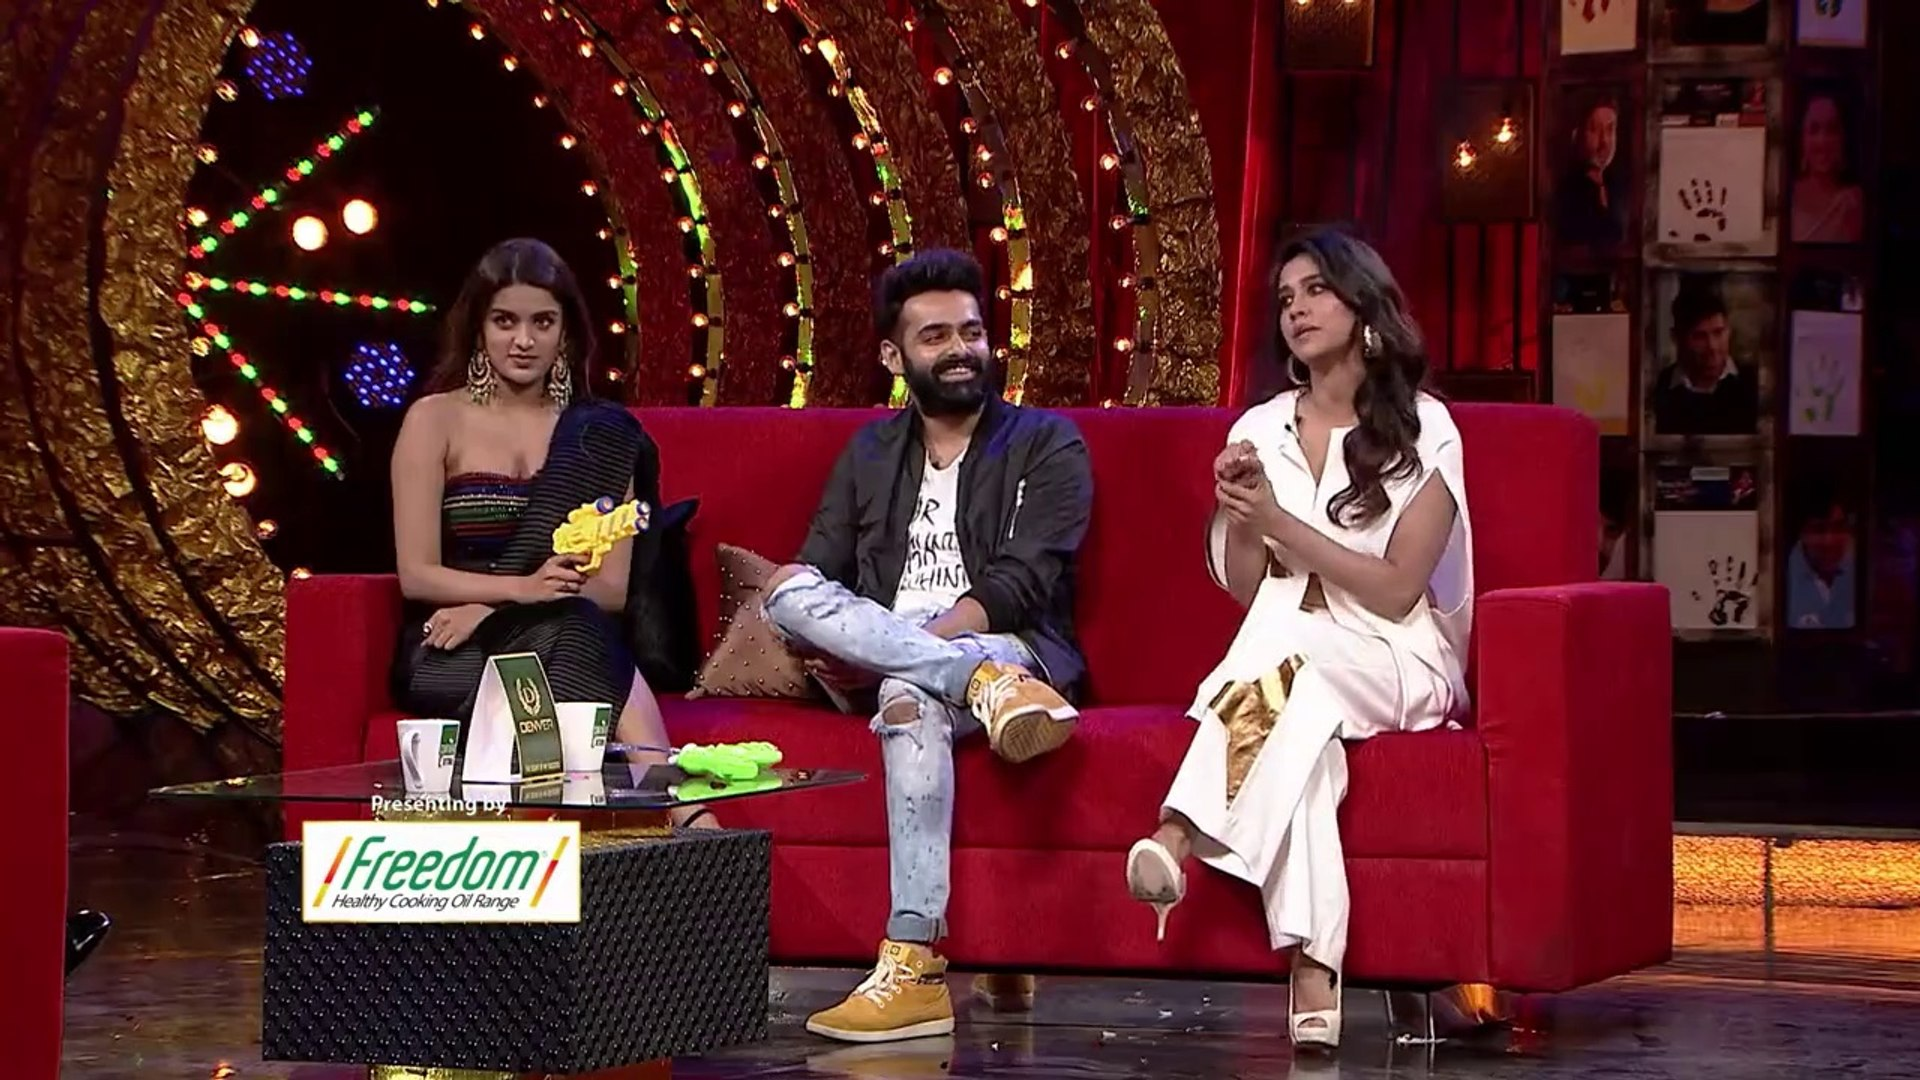 Konchem Touchlo Unte Cheptha Season 4 Episode 1 Ram Pothineni Niddhi Agerwal Nabha Natesh Video Dailymotion